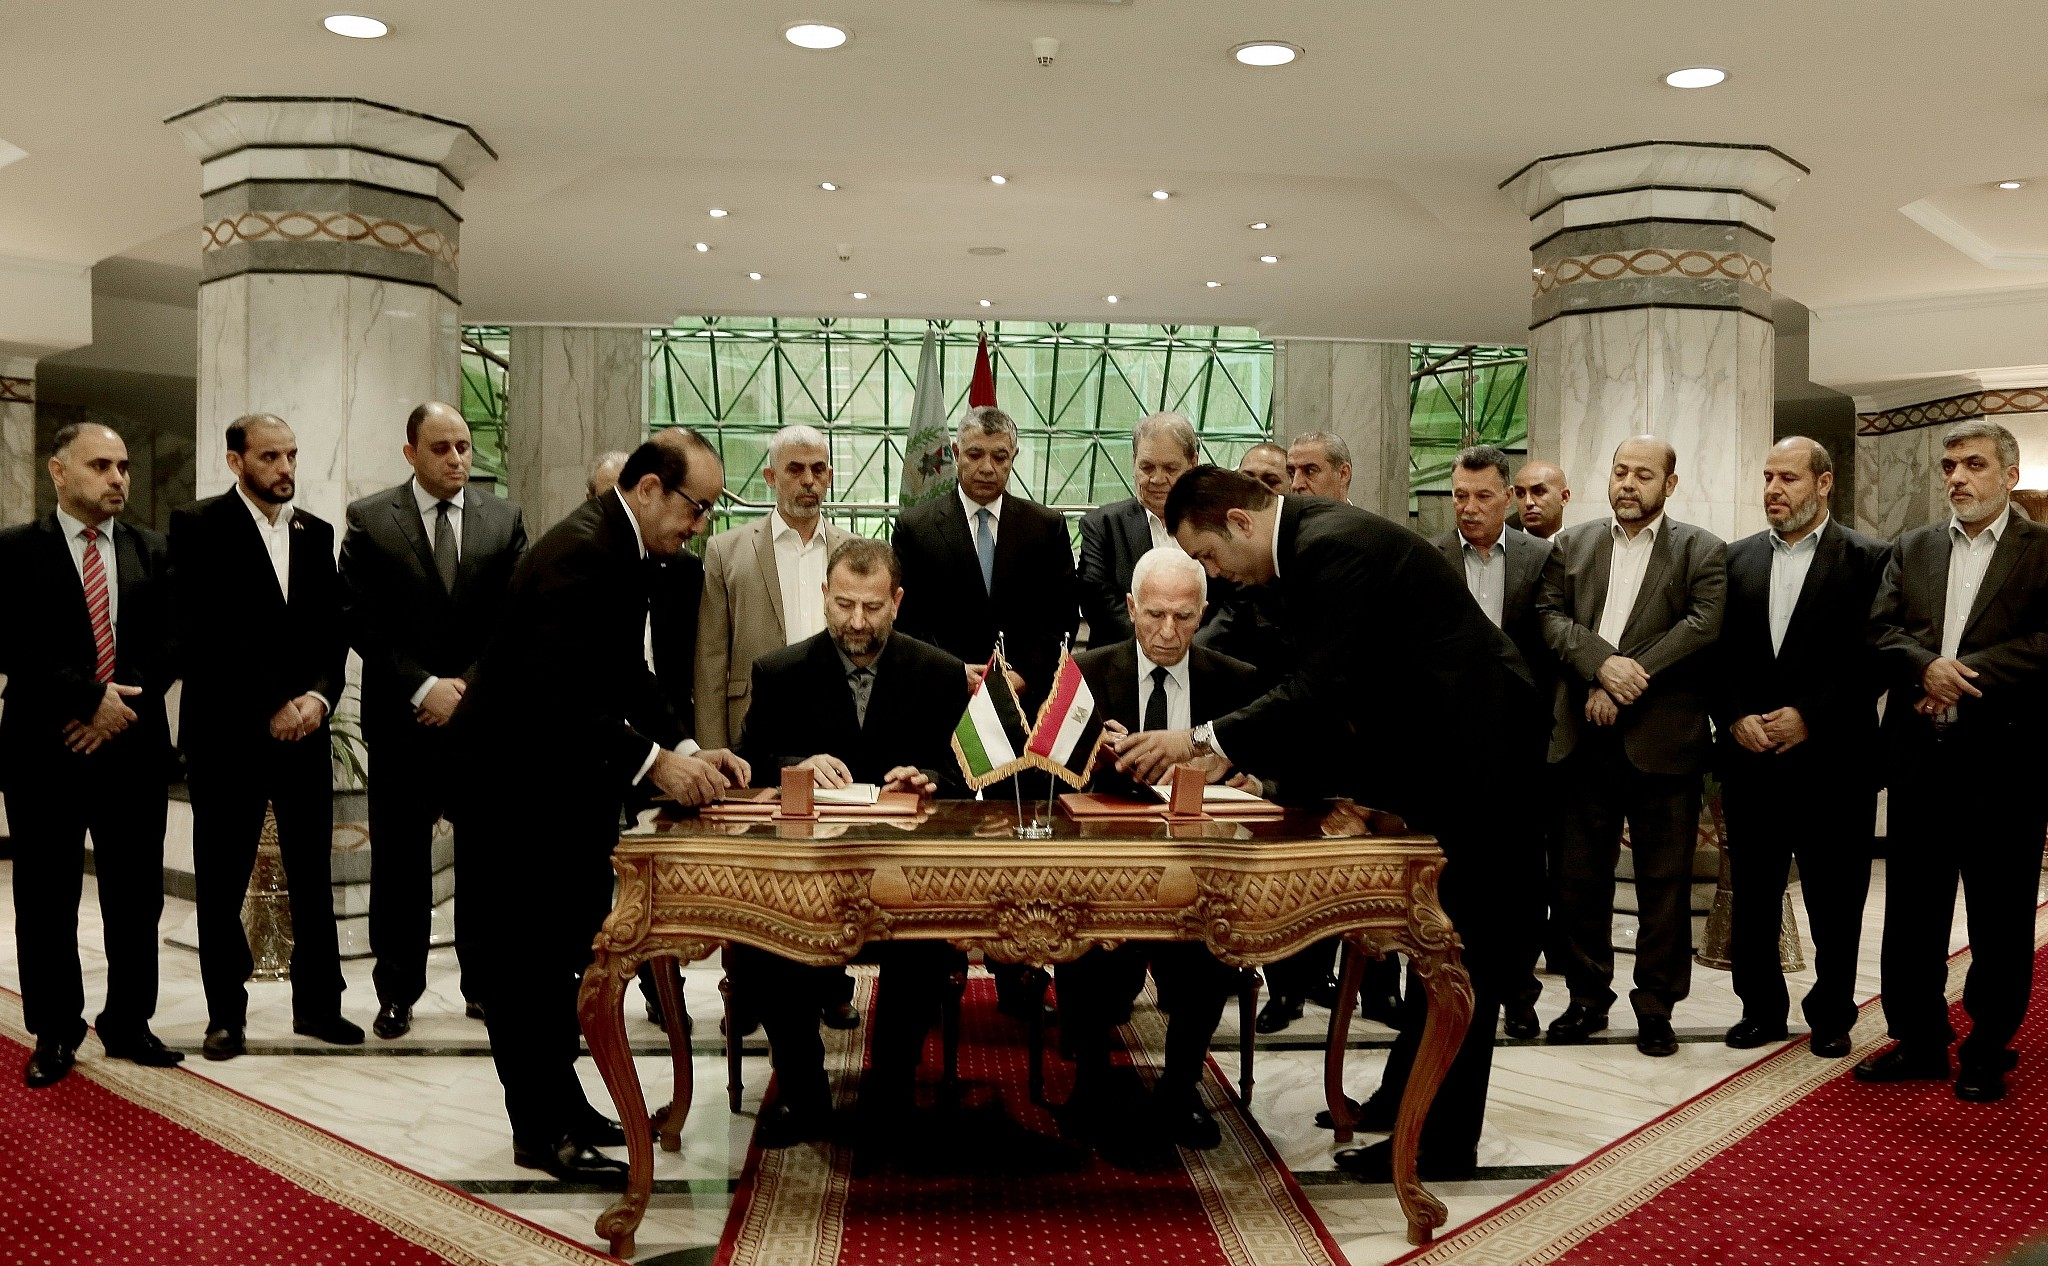 Fatah, Hamas sign Palestinian reconciliation deal in Cairo